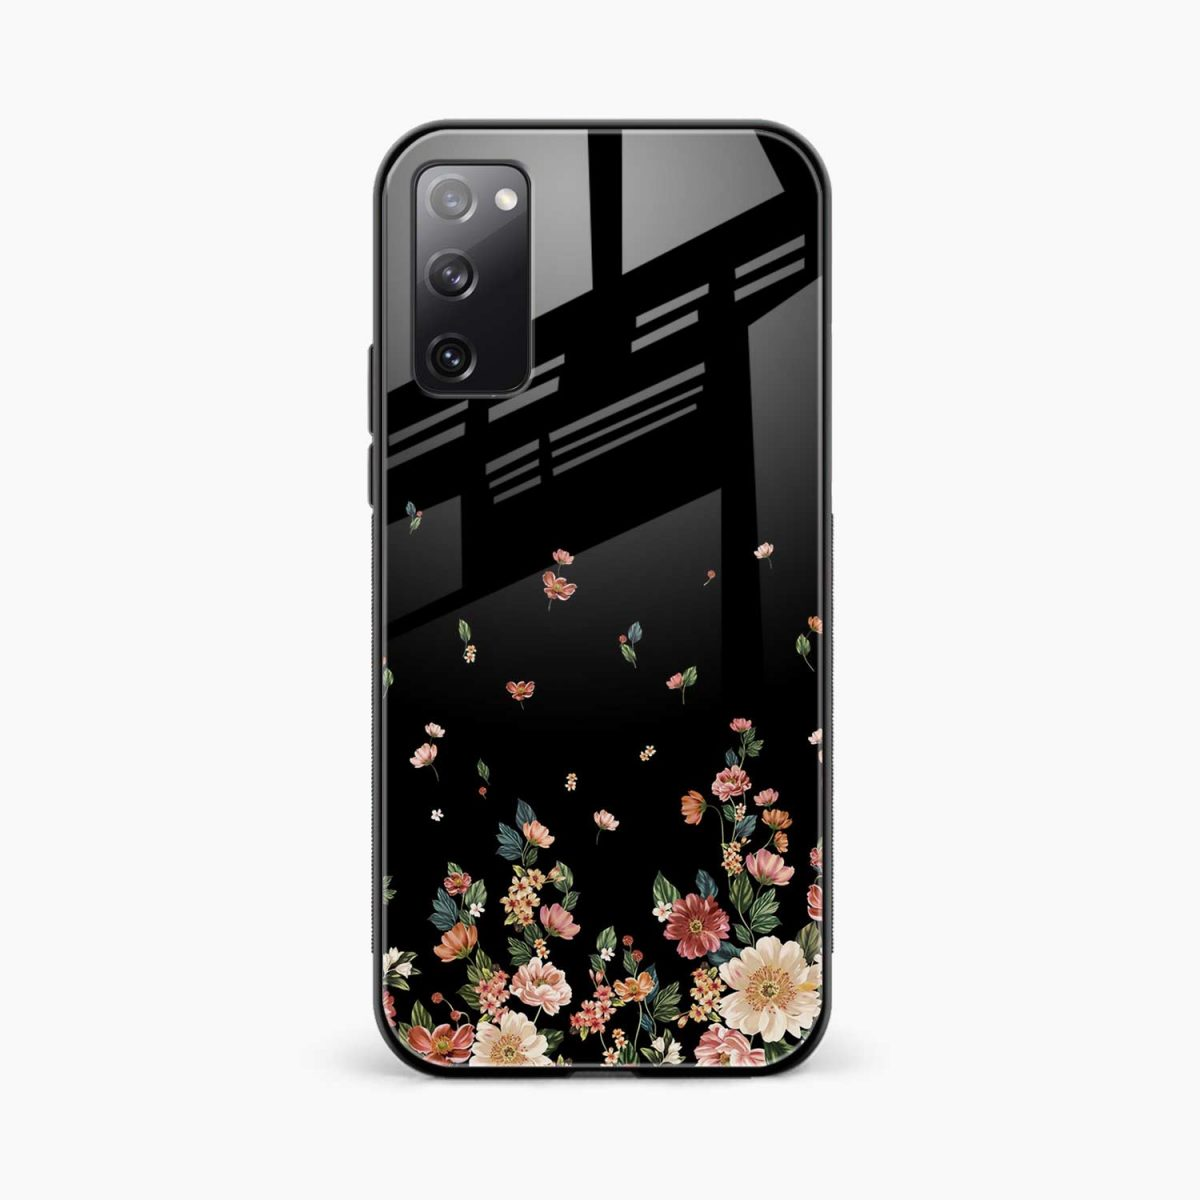 graceful floral black colored front view samsung galaxy s20 fe back cover